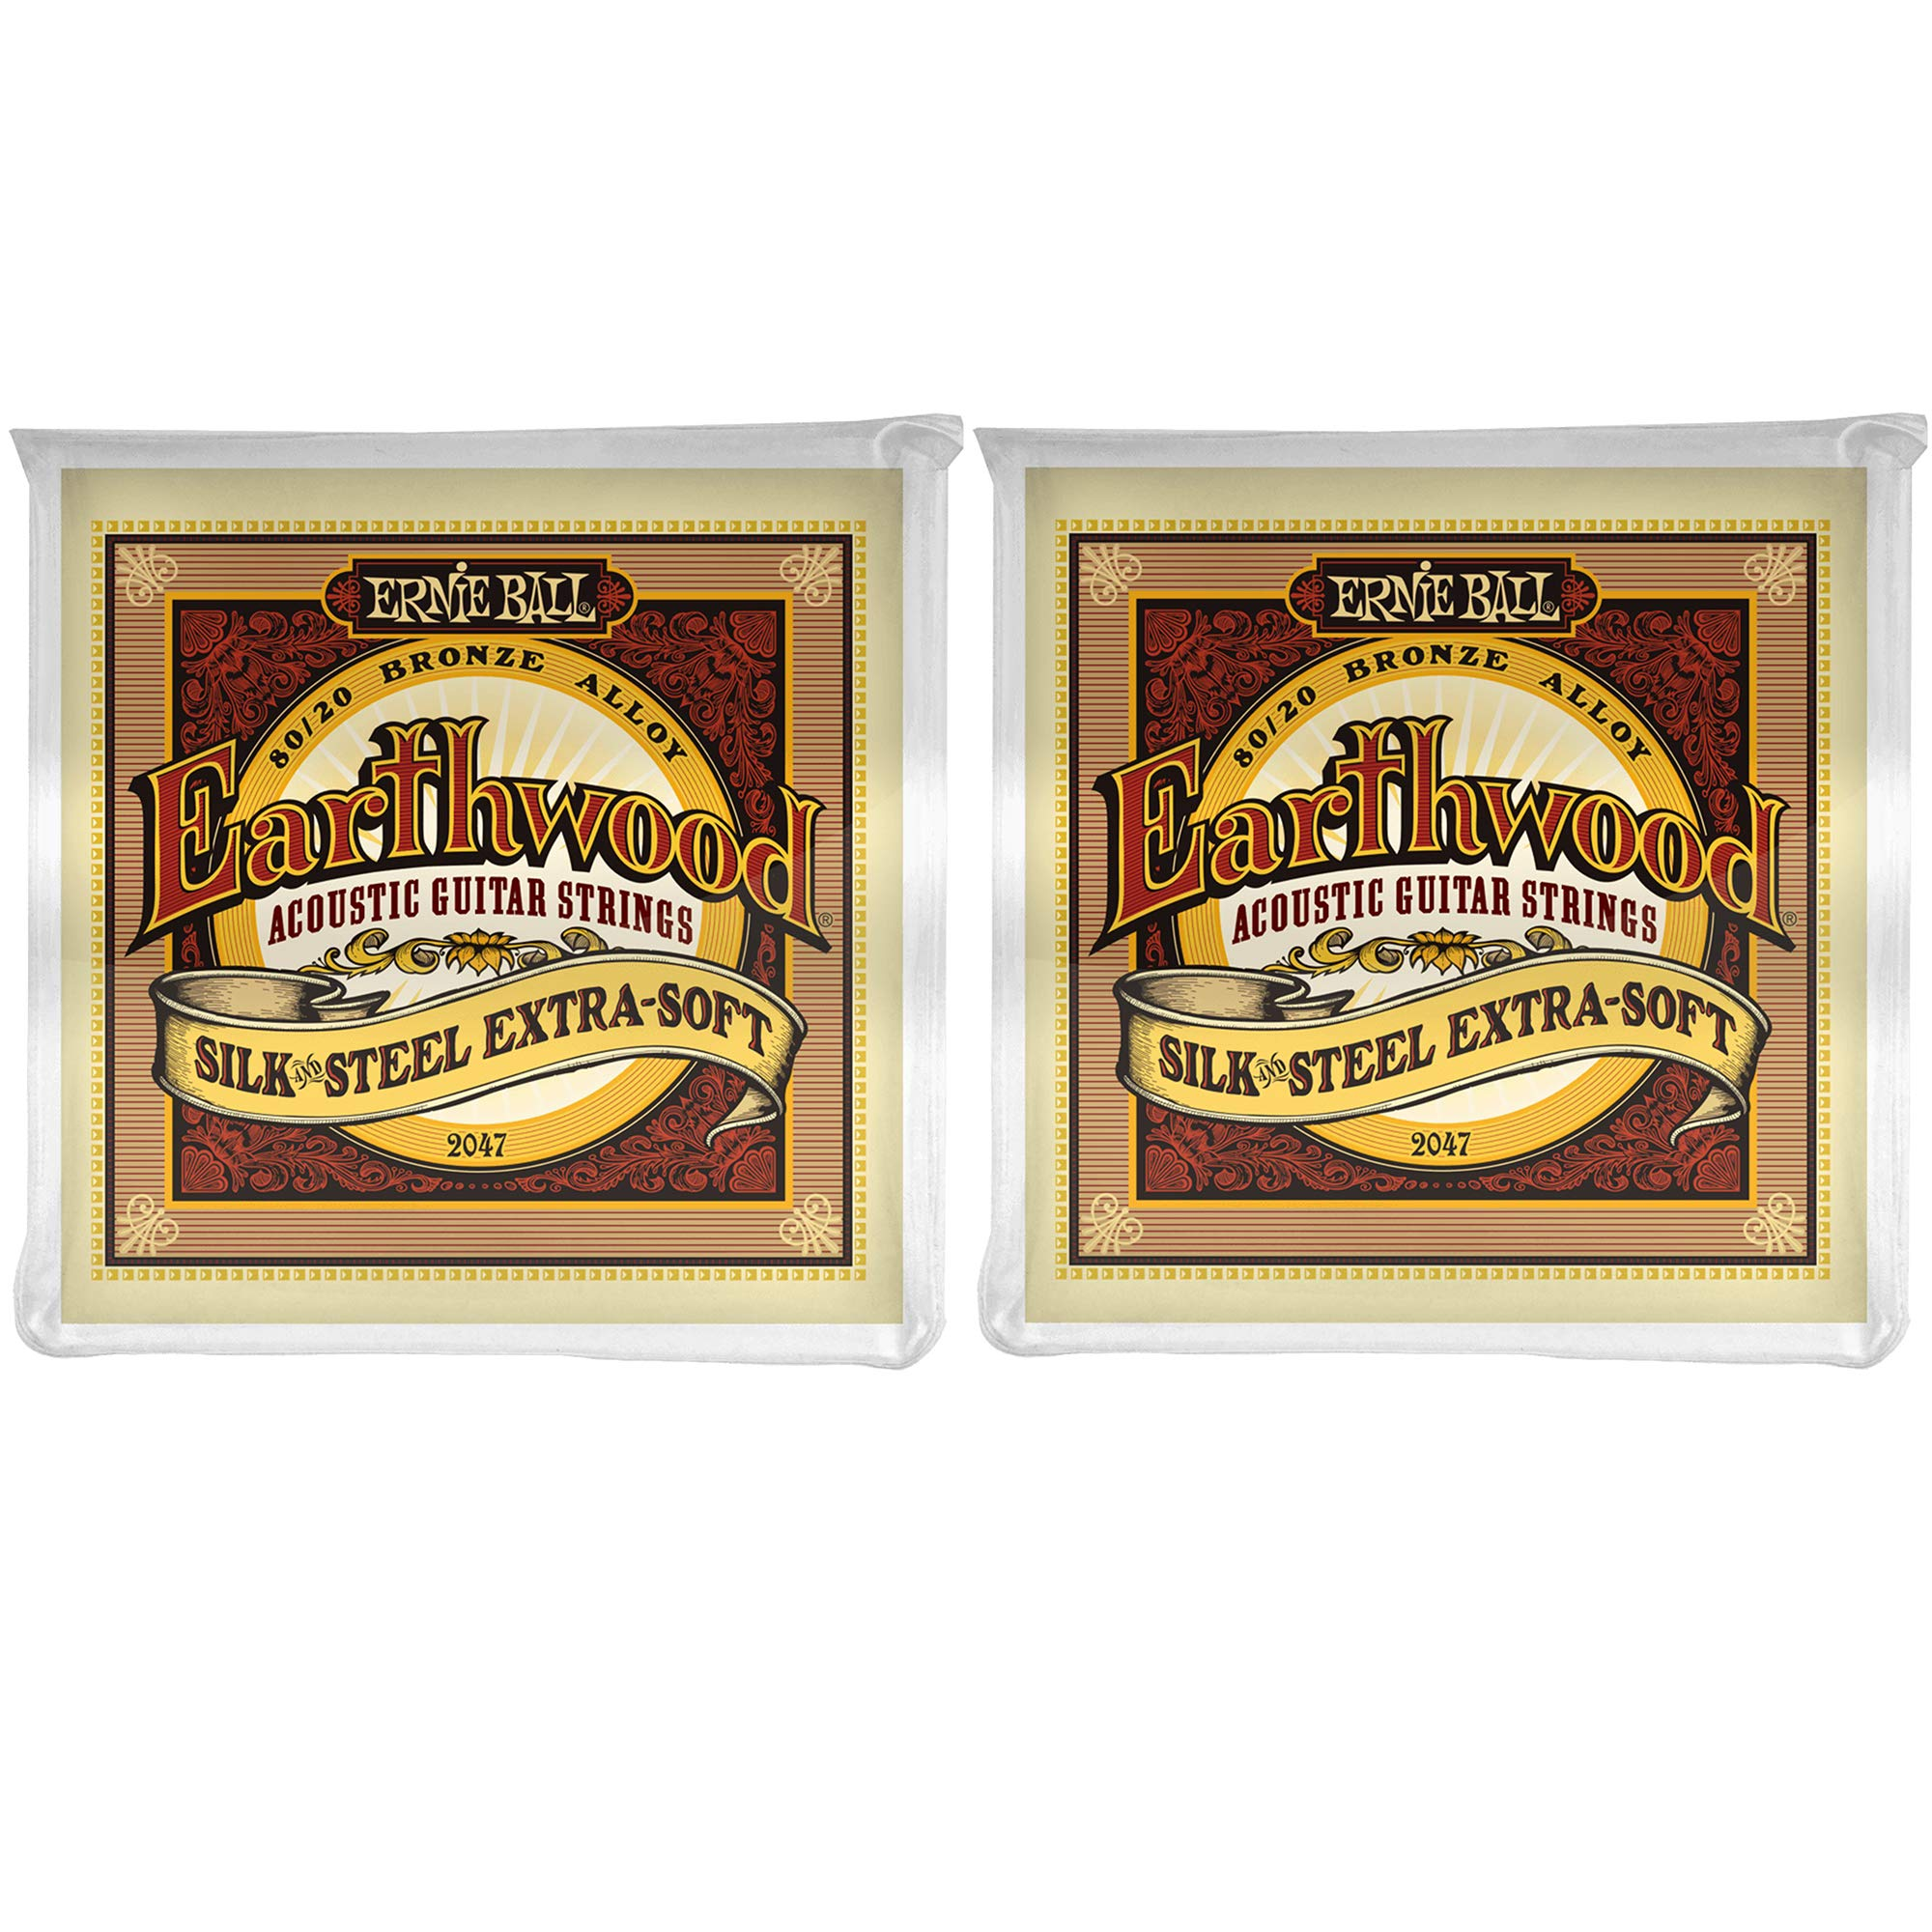 Ernie Ball 2047 Earthwood Silk and Steel Extra Soft Acoustic Strings 10-50 2 Pack Bundle by ErnieBall.